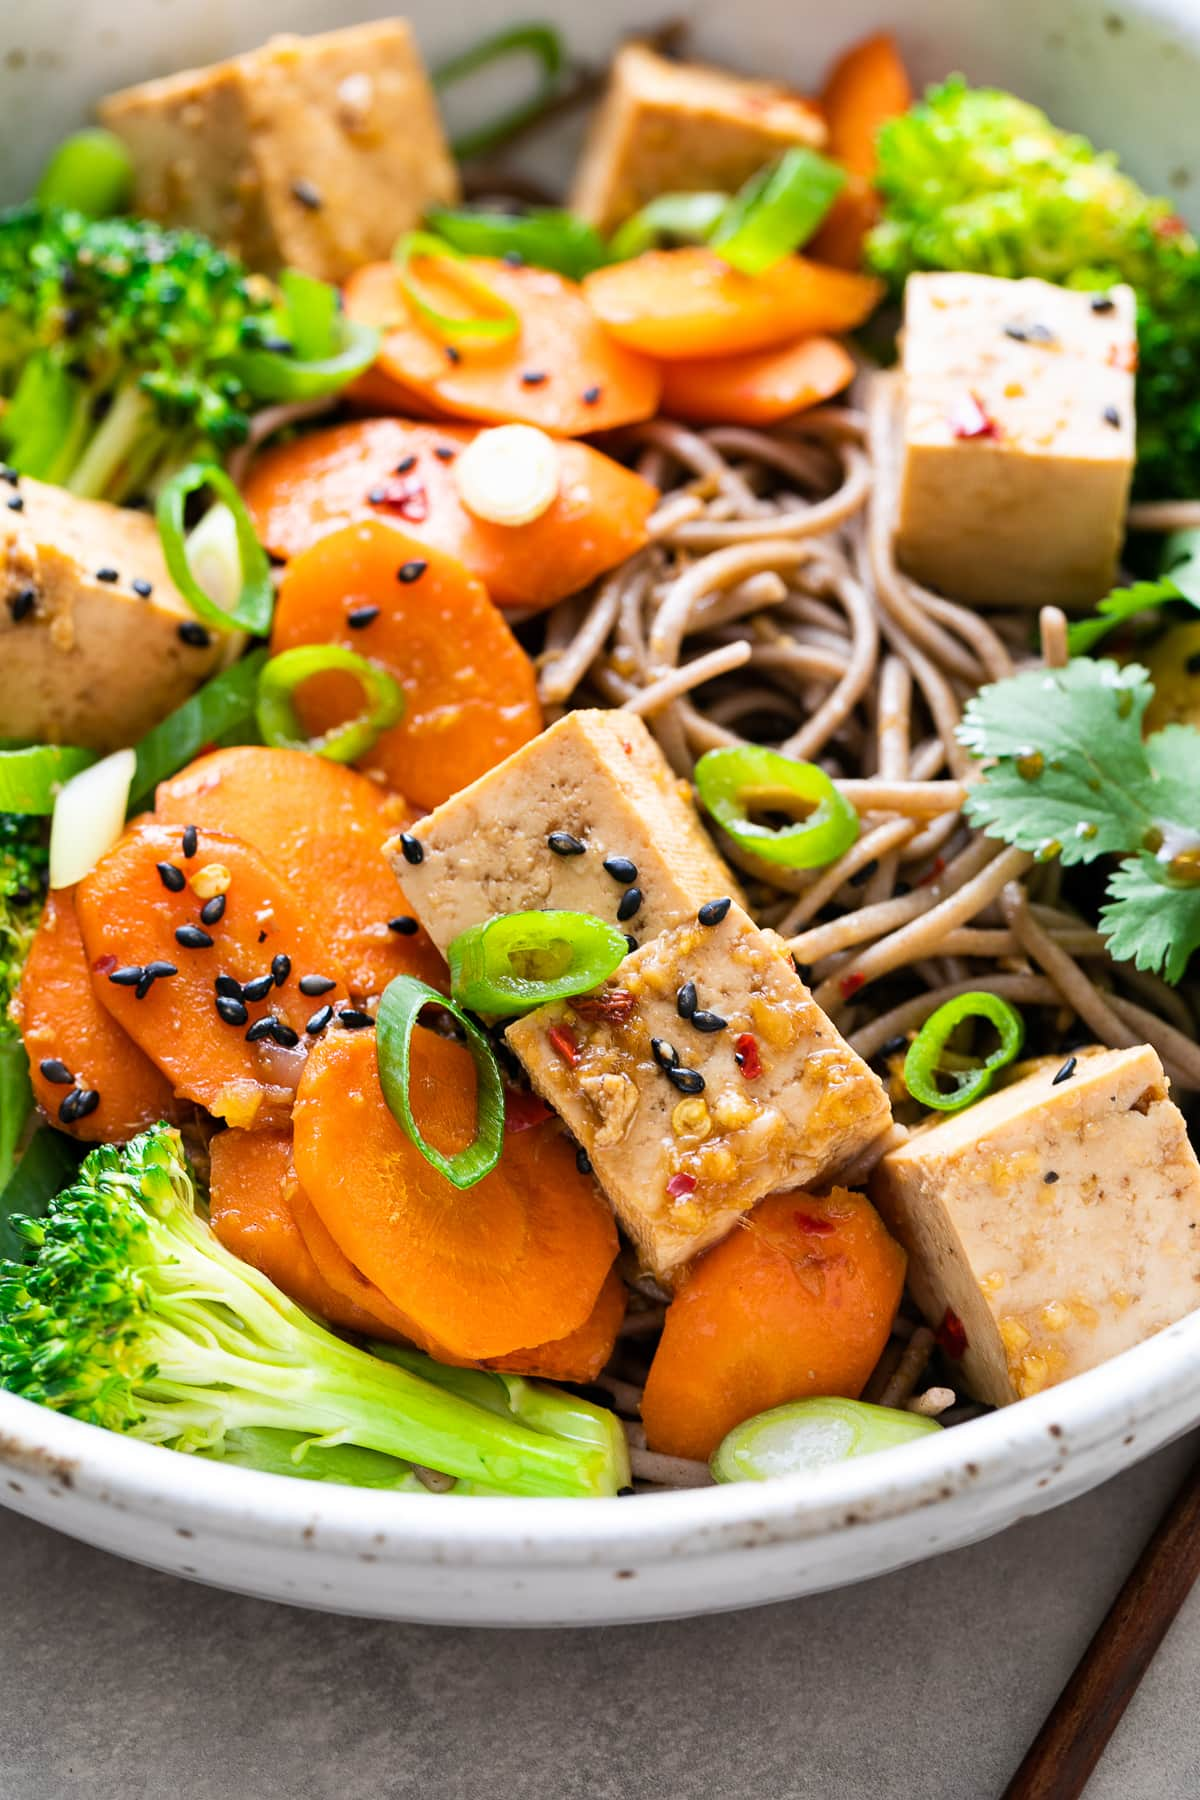 up close, side angle view of serving of sesame soba noodle salad with tofu on a bowl.